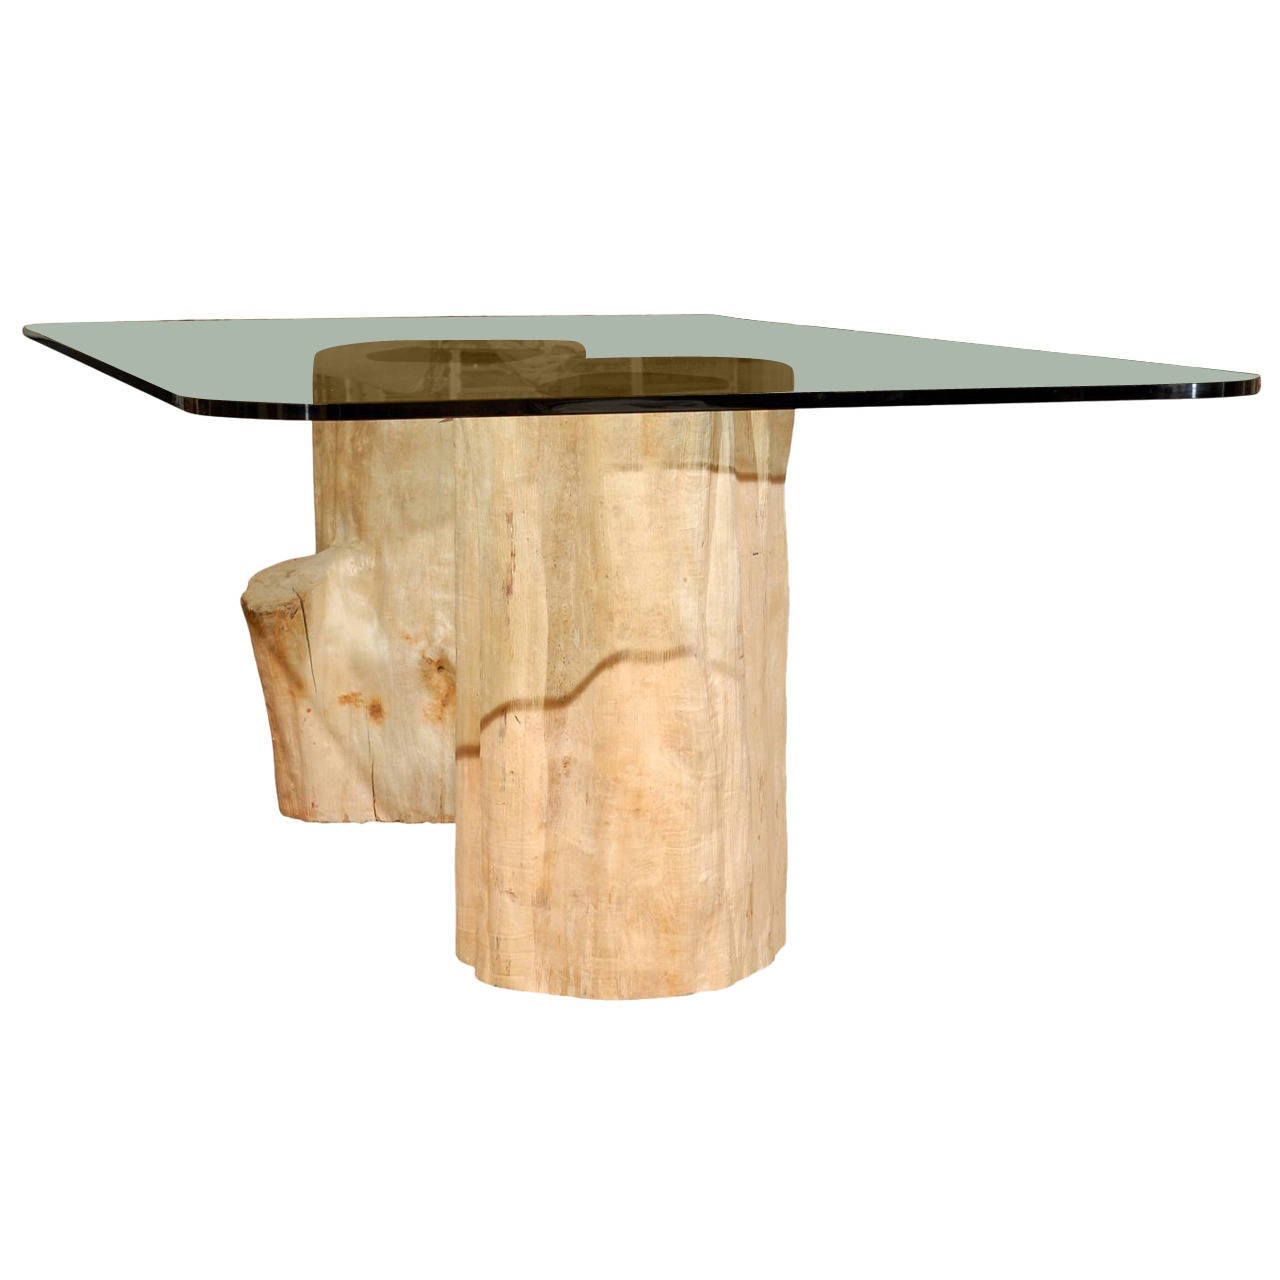 dining table with antique wood tree bases from burma for sale at 1stdibs. Black Bedroom Furniture Sets. Home Design Ideas